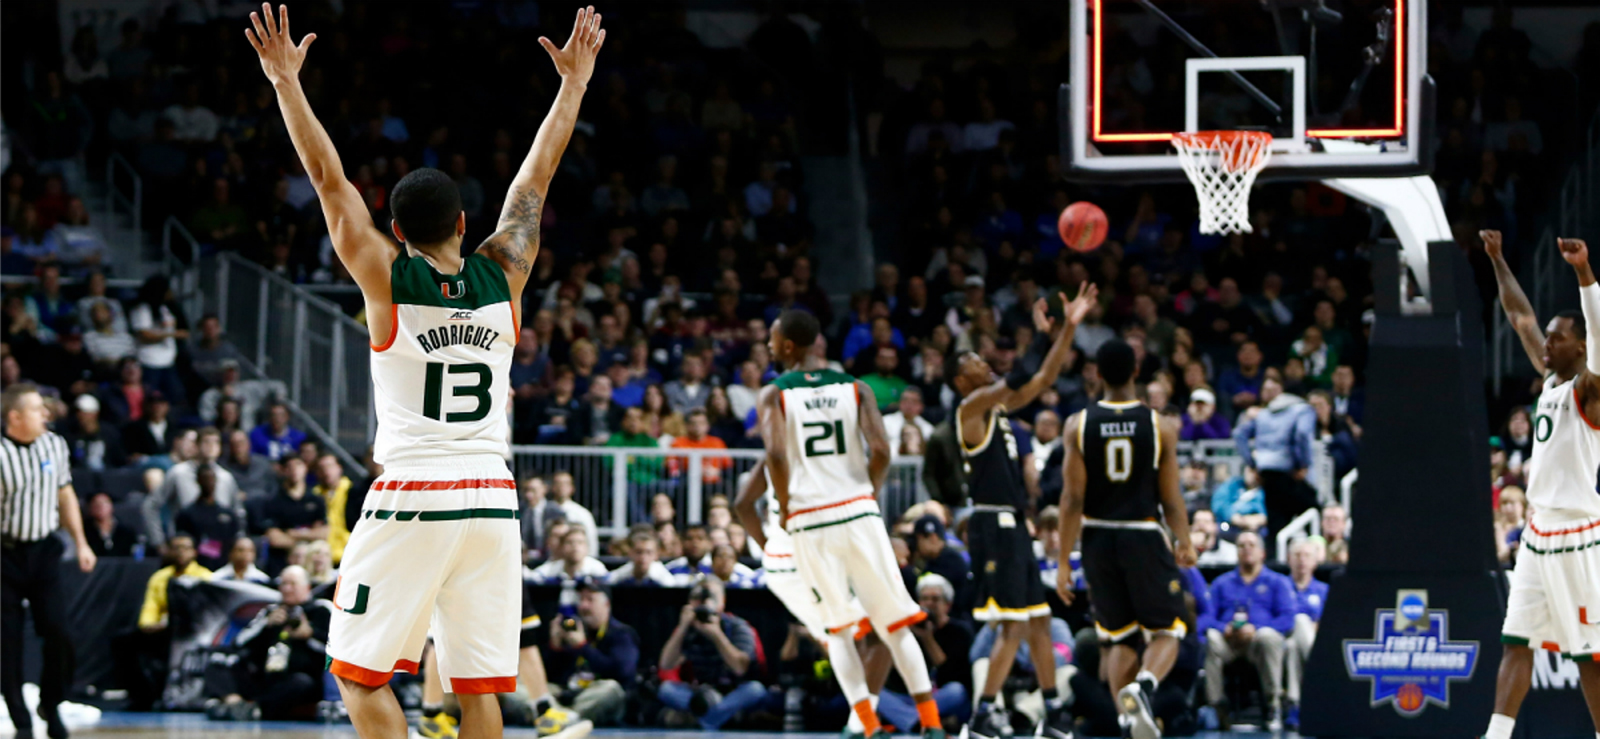 miami hurricanes basketball the u wichita state shockers march madness ncaa tournament